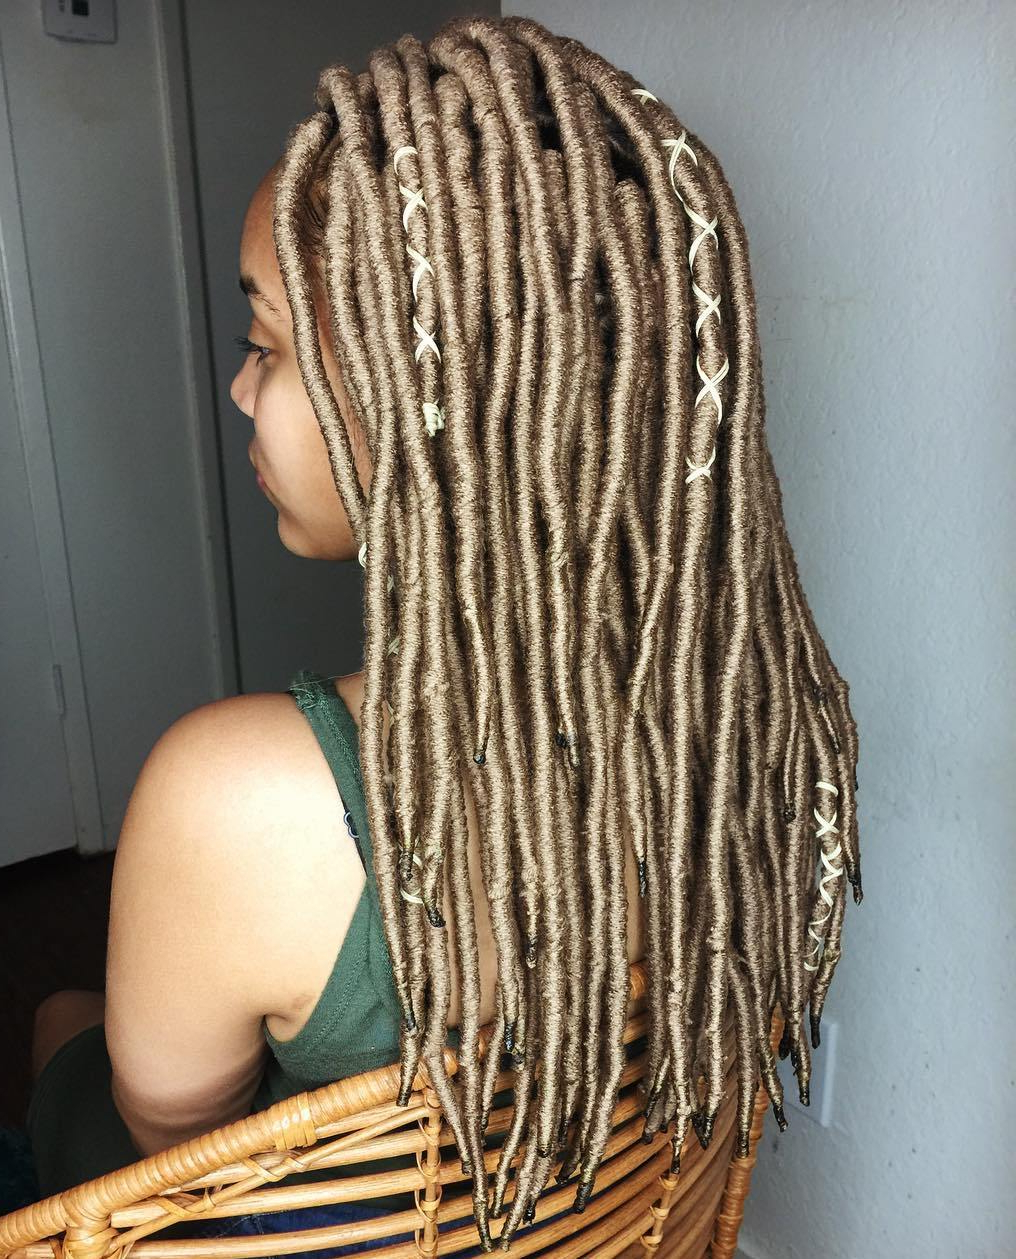 Recent Very Thick And Long Twists Yarn Braid Hairstyles With 20 Playful Ways To Wear Yarn Dreads (View 18 of 20)